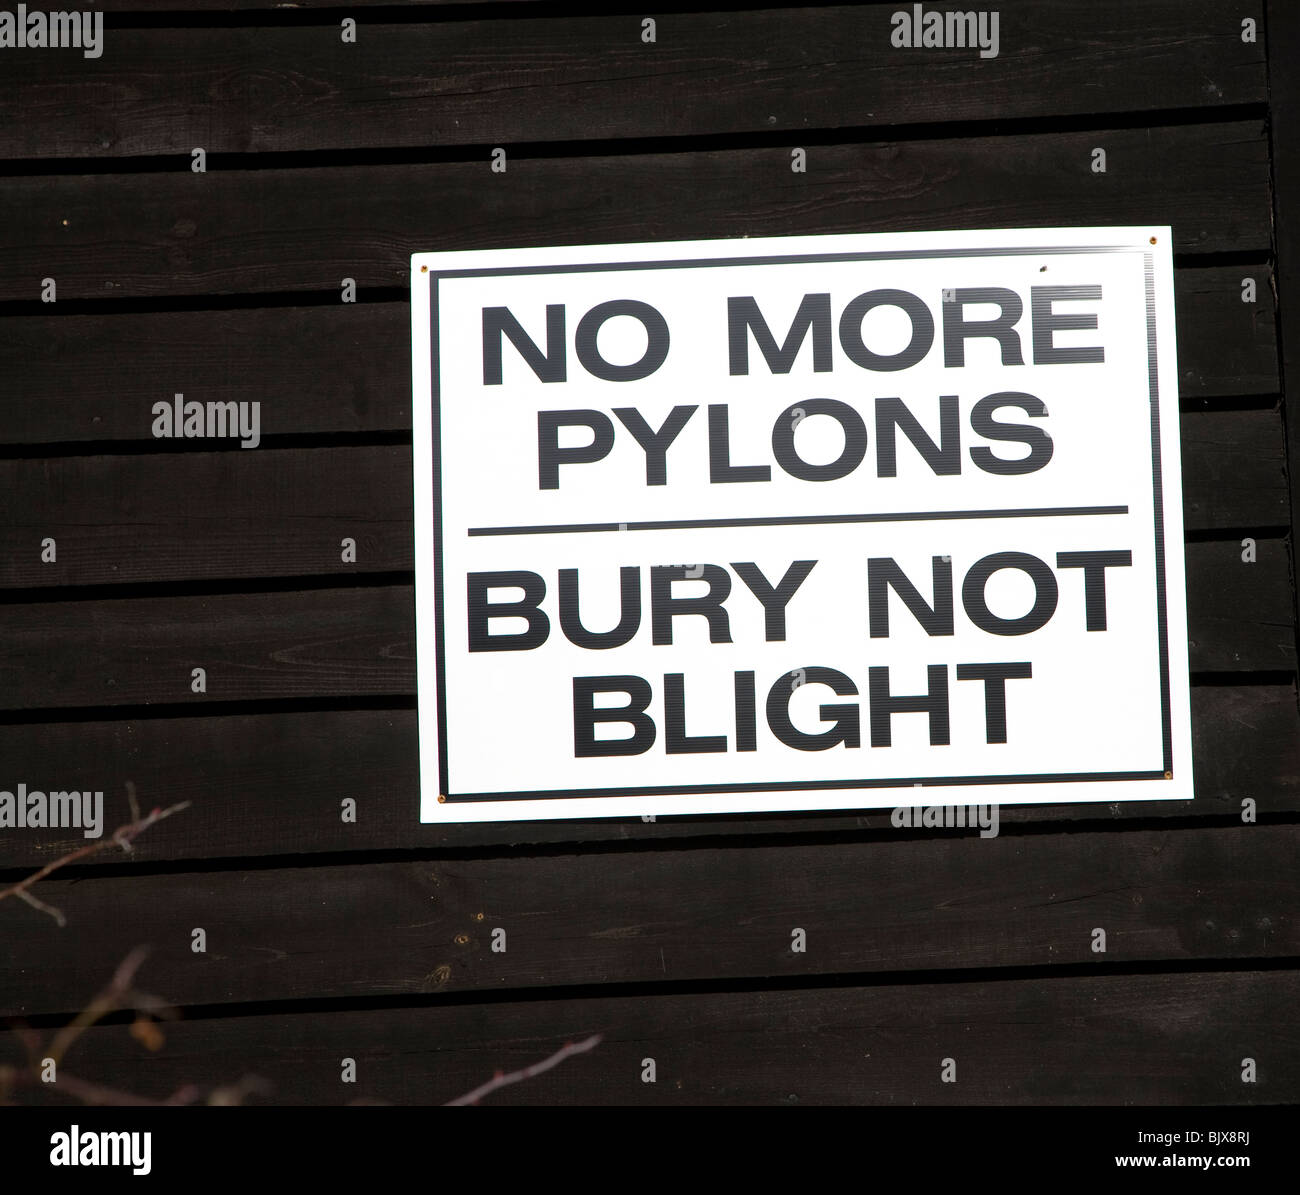 No More Pylons protest poster - Stock Image